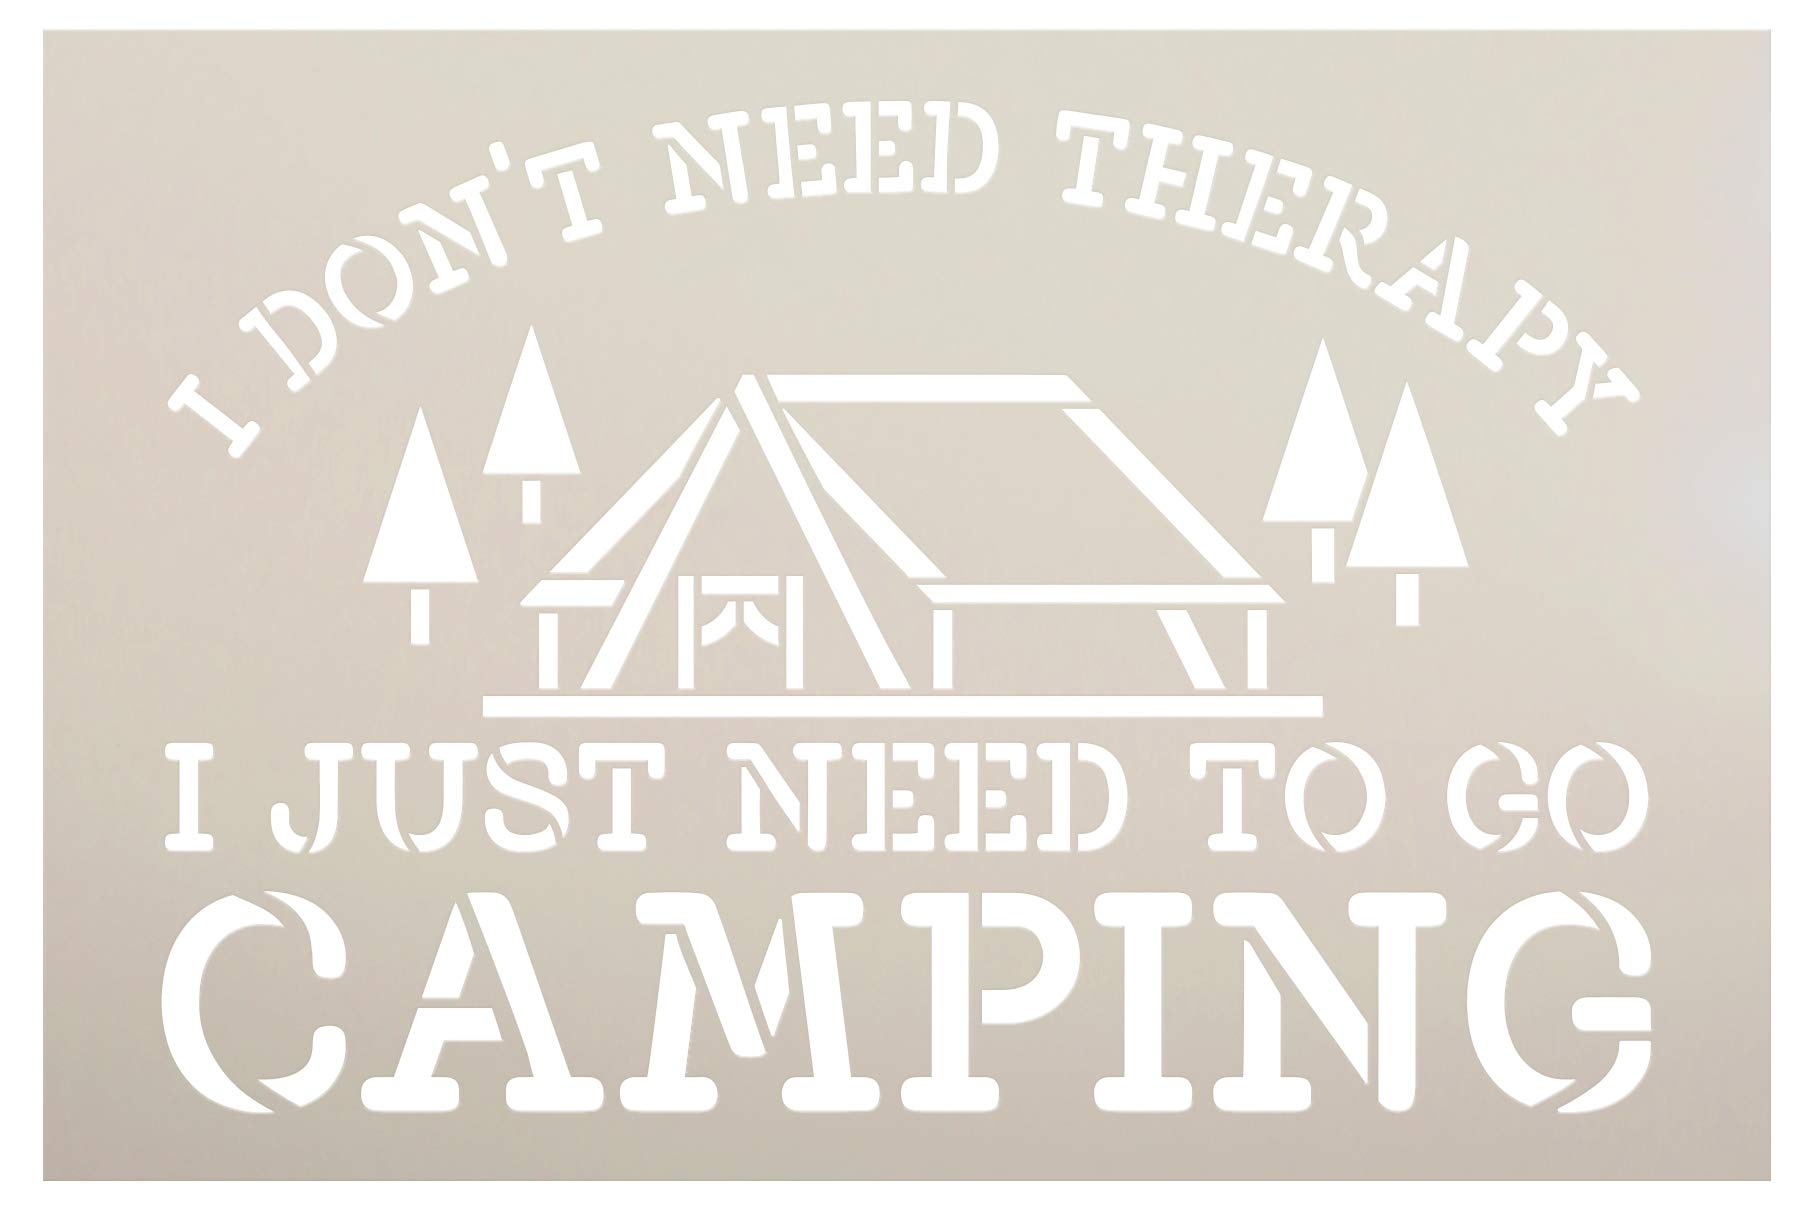 No Therapy Just Camping Stencil with Tent by StudioR12 | DIY Country Rustic Home Decor | Camping Adventure Word Art | Craft & Paint Wood Sign | Reusable Mylar Template | Select Size (9 x 6 inch)